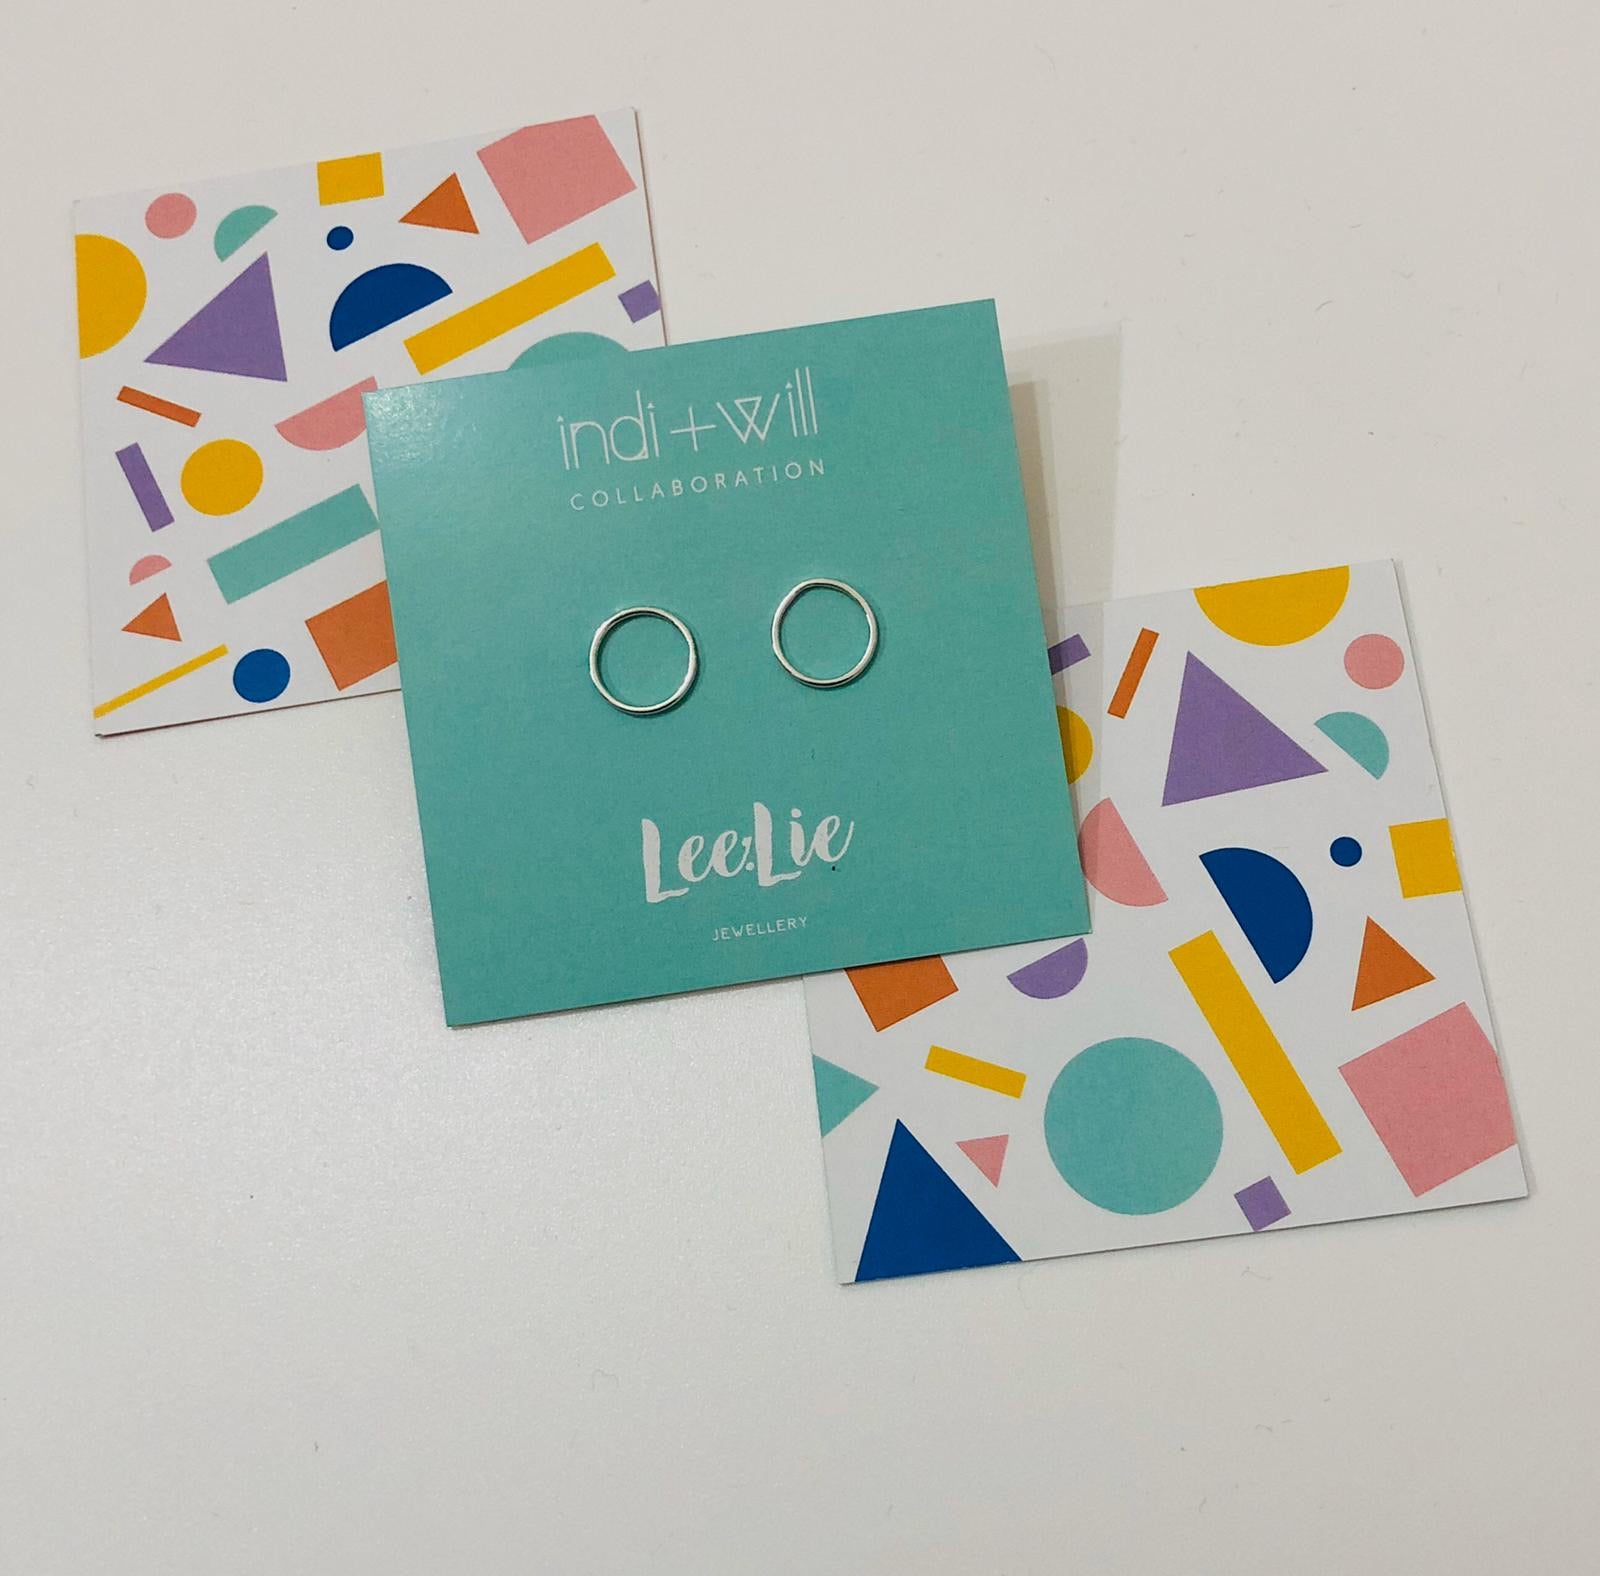 Indi + Will X Lee:Lie  - collaboration - Shapes - Circle stud earrings